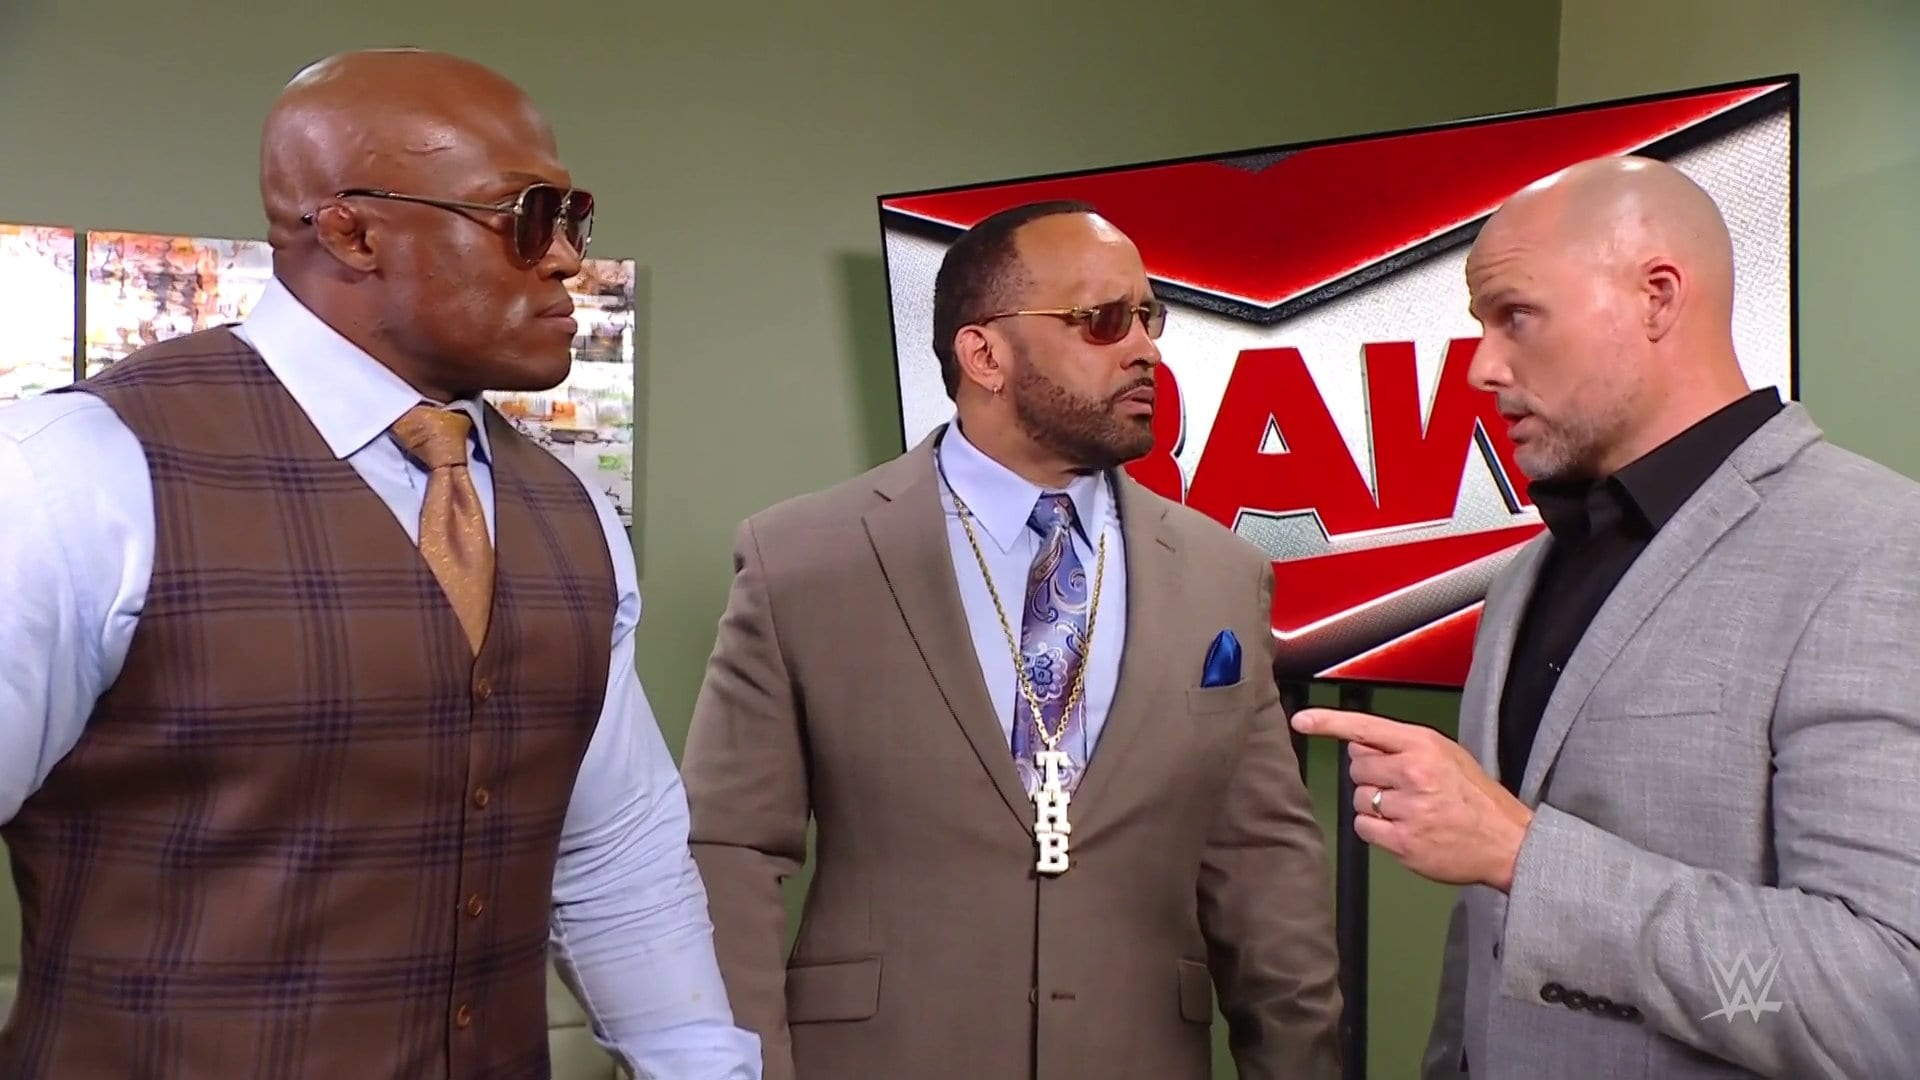 WWE Monday Night RAW Results – Women's Tag Team Main Event, Beat The Clock Match, More